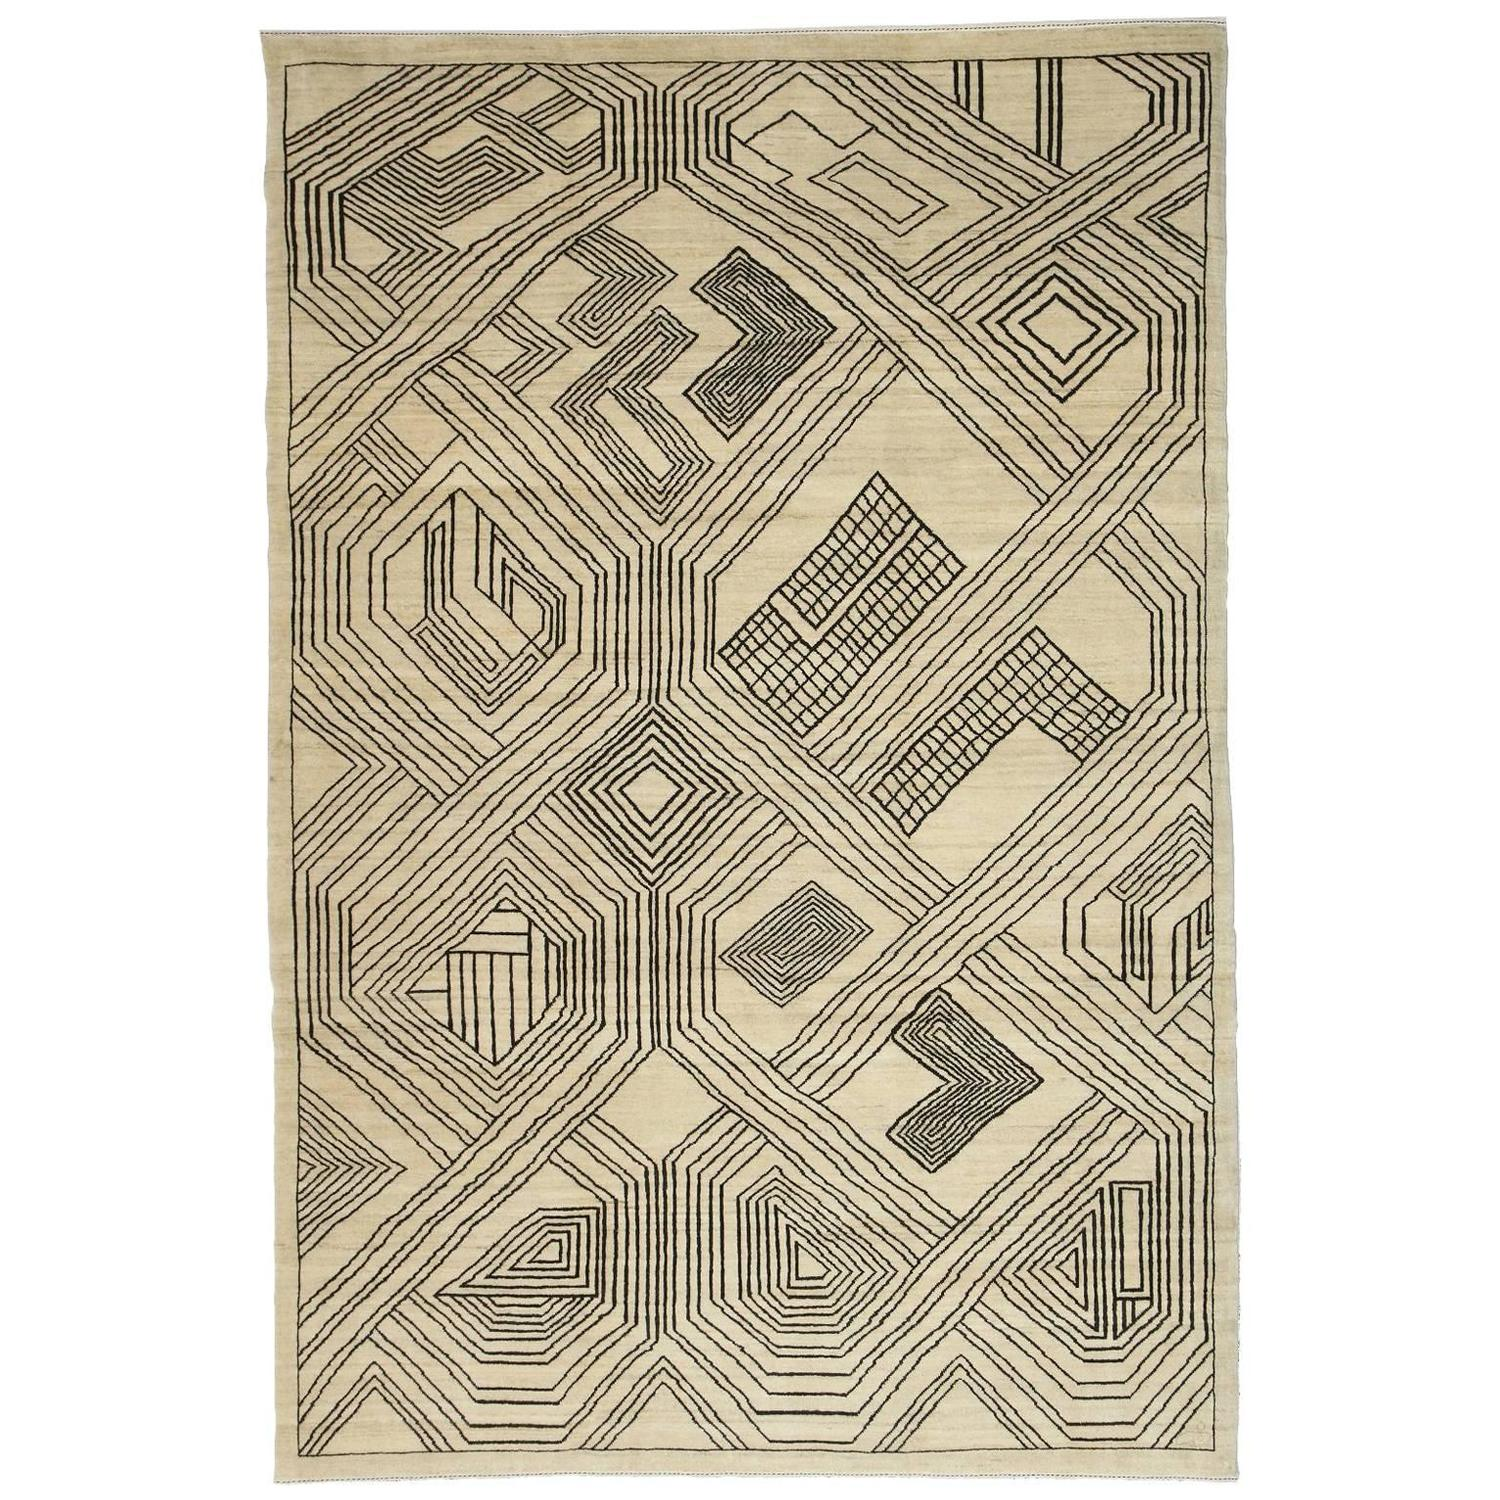 Orley Shabahang Signature Carpet In Handspun Wool Undyed